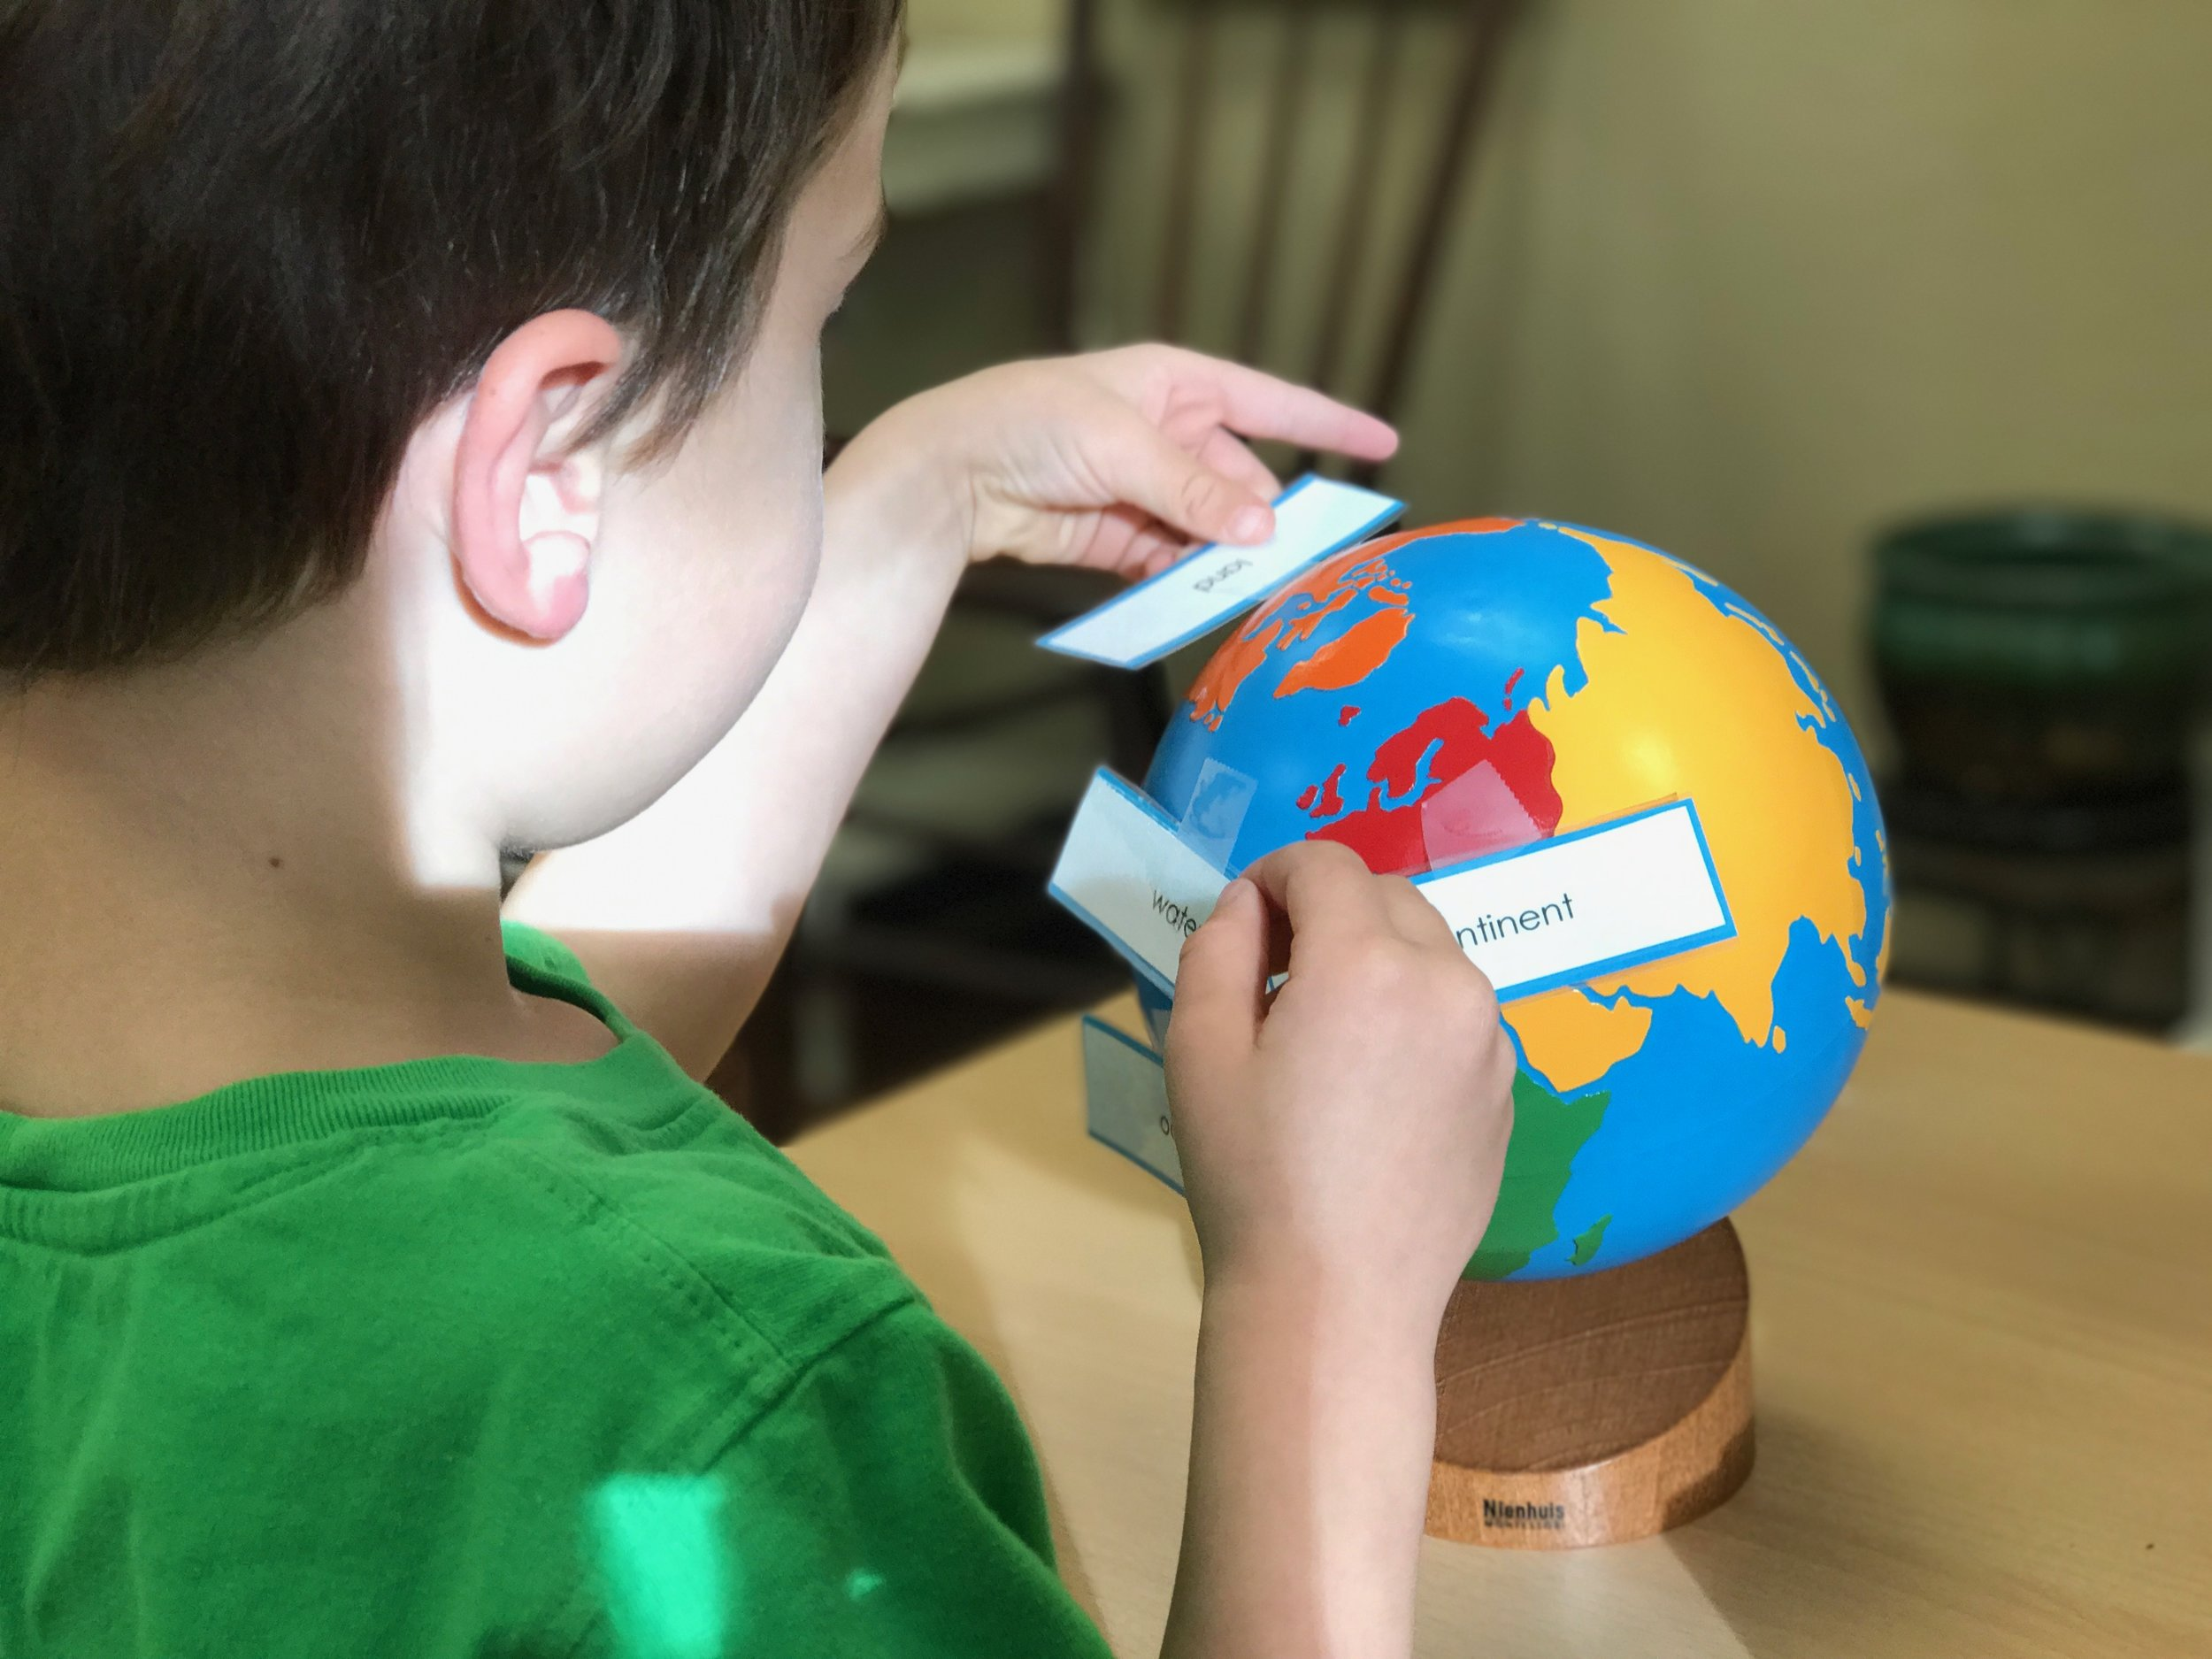 Labeling the Painted Globe